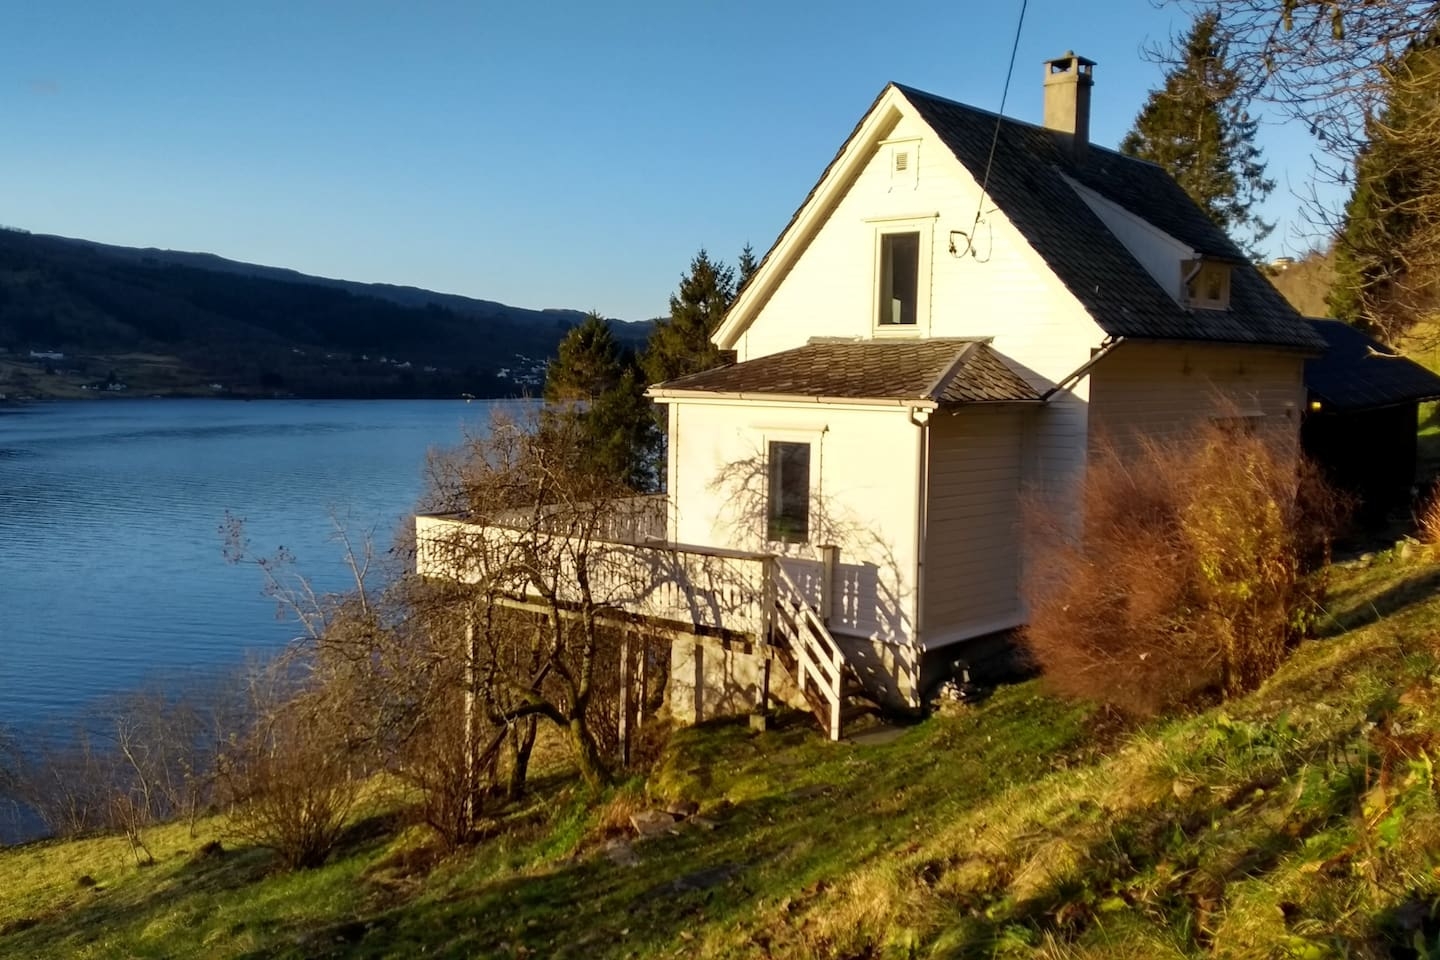 Welcome to Sofia`s house by the quiet, calm waters of Sørfjorden. In the old days the fjord was the main road to Bergen for people who lived on this farm.